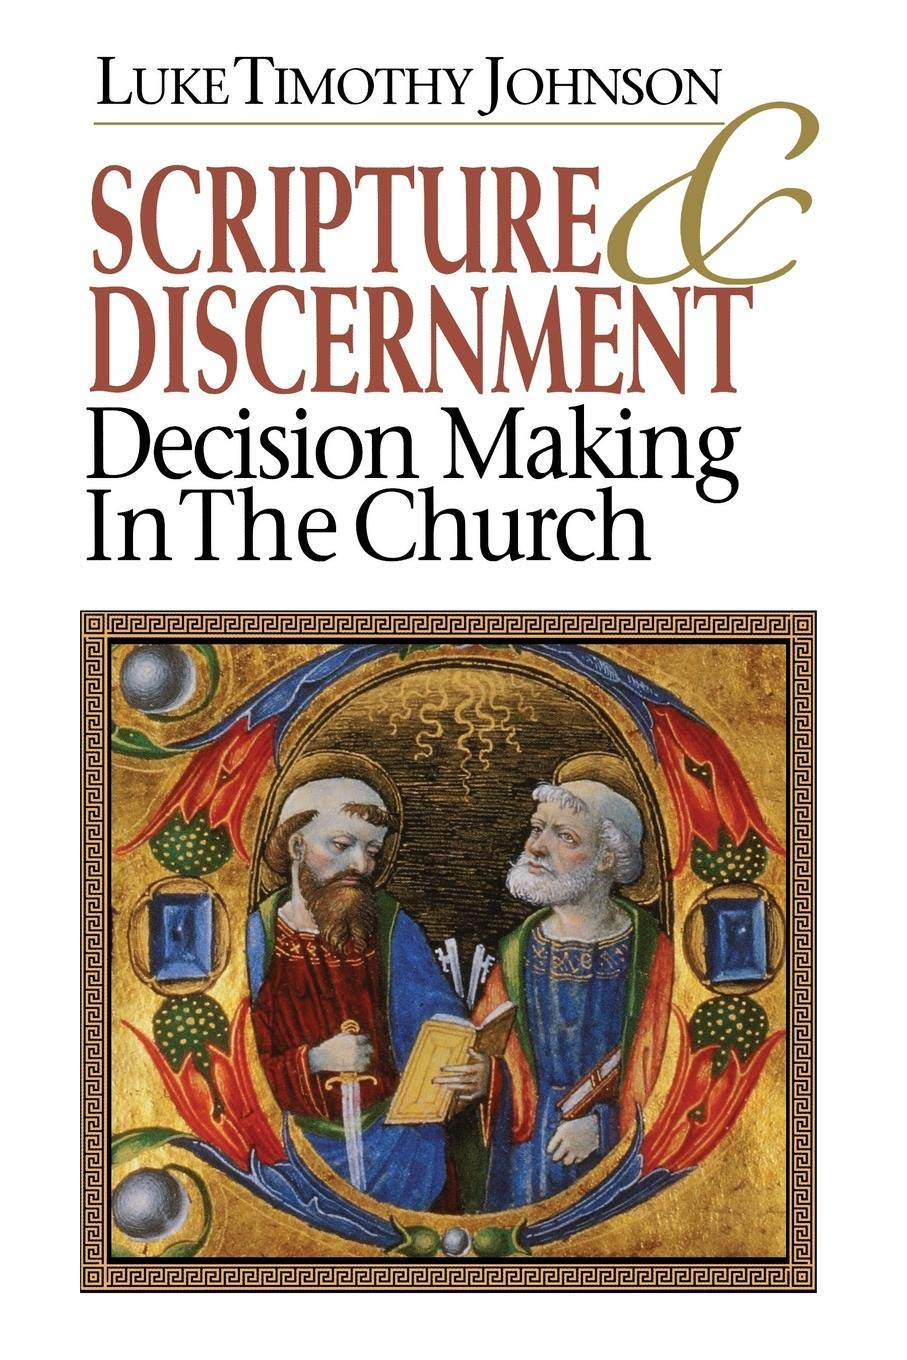 SCRIPTURE AND DISCERNMENT.jpg